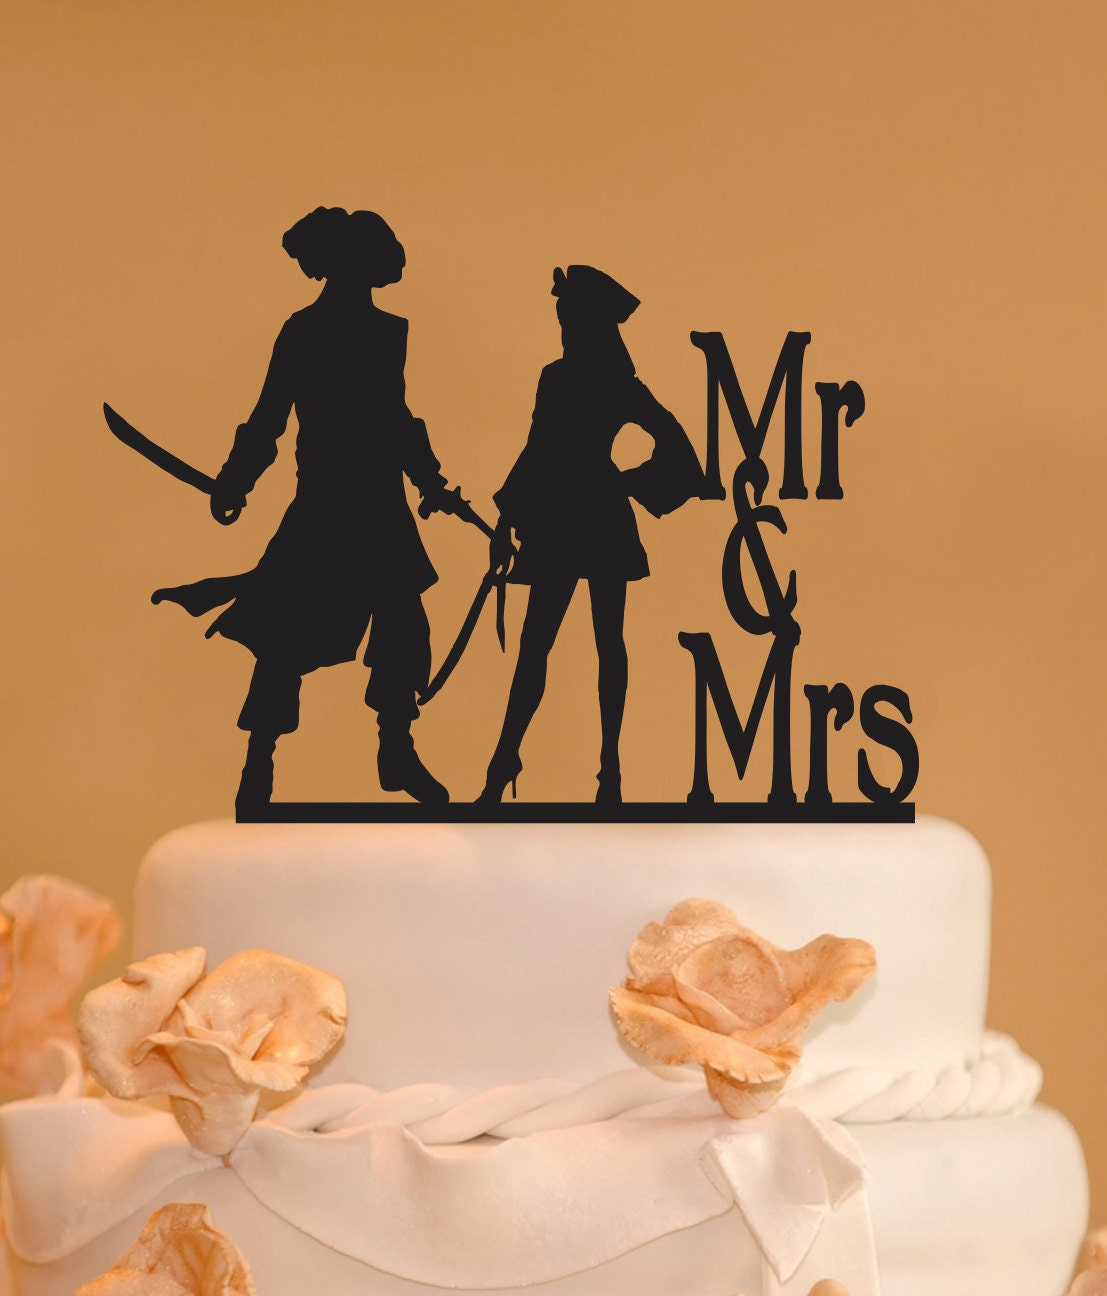 pirate wedding cake topper wedding cake topper mr and mrs wedding cake topper 18622